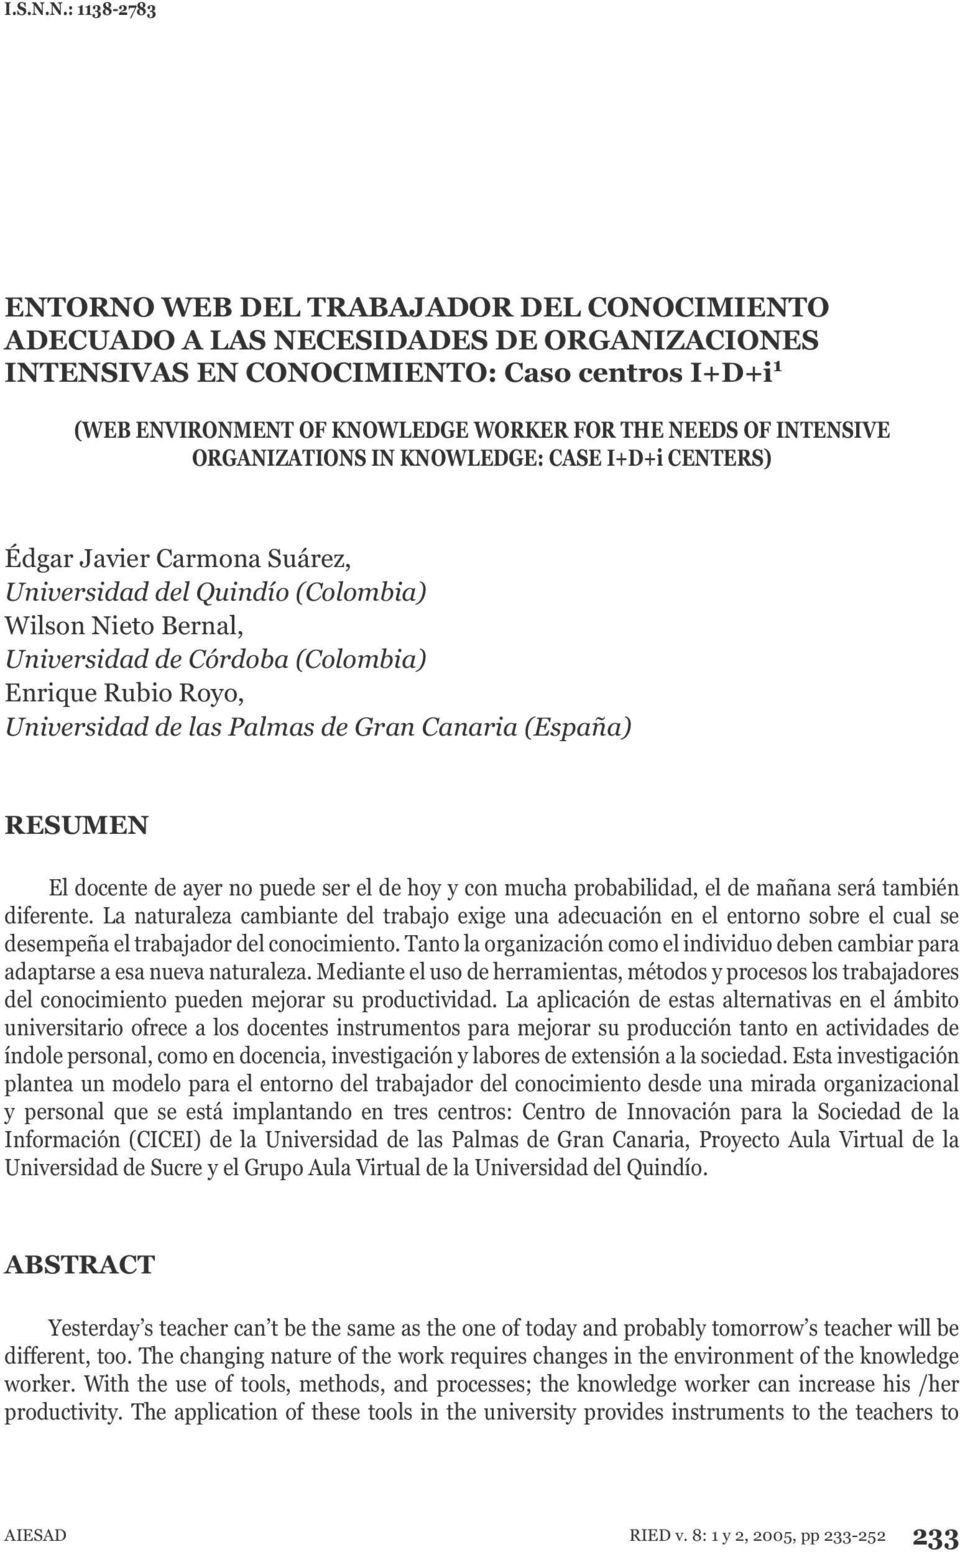 NEEDS OF INTENSIVE ORGANIZATIONS IN KNOWLEDGE: CASE I+D+i CENTERS) Universidad del Quindí (Clmbia) Wilsn Niet Bernal, Universidad de Córdba (Clmbia) Enrique Rubi Ry, Universidad de las Palmas de Gran